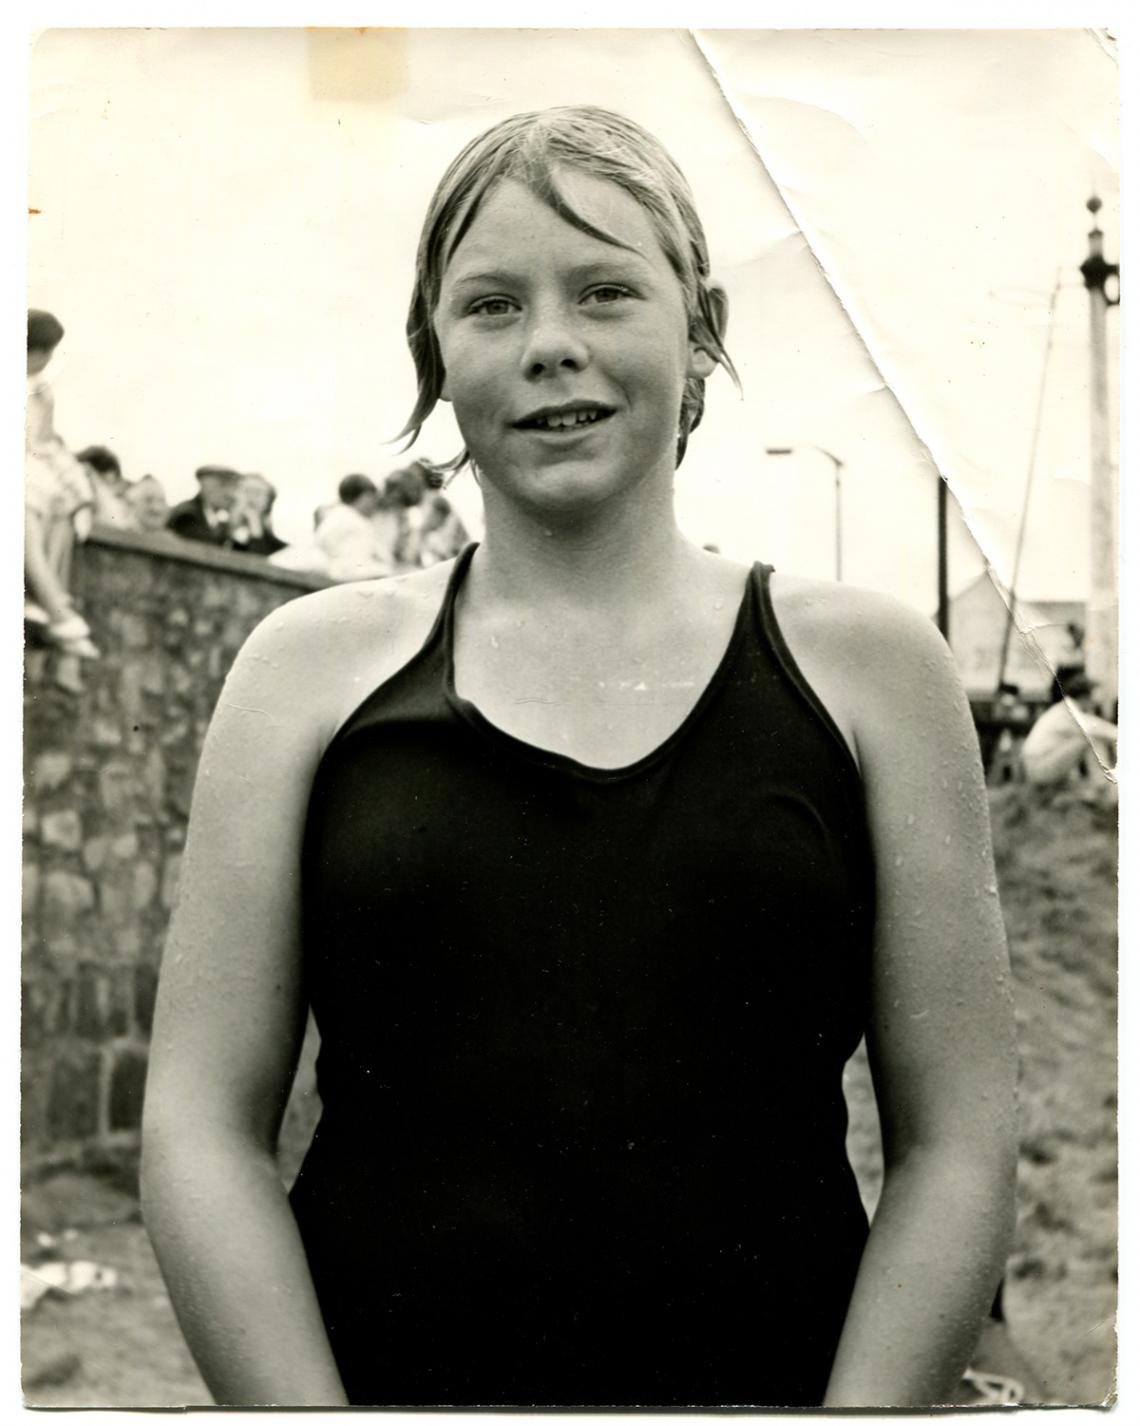 Wendy Tresidder after swimming